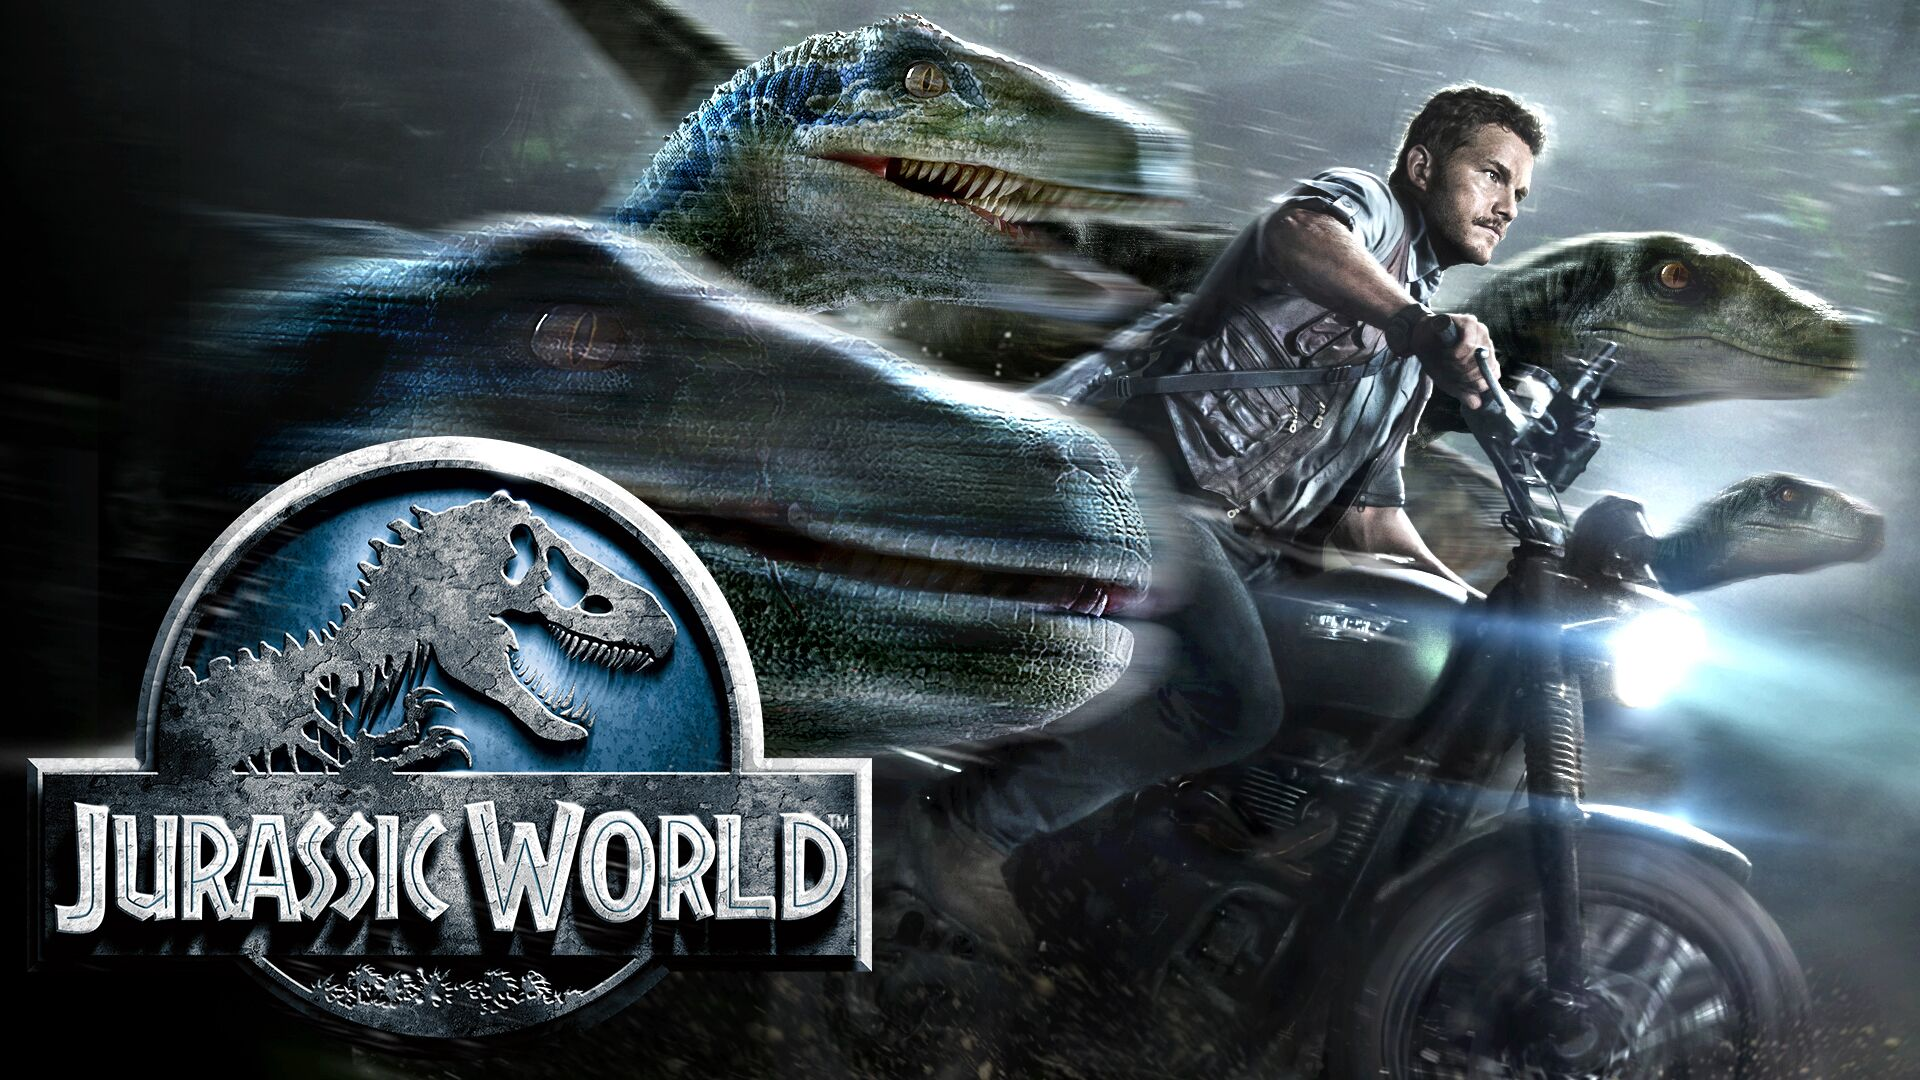 Watch Jurassic World Online With Neon